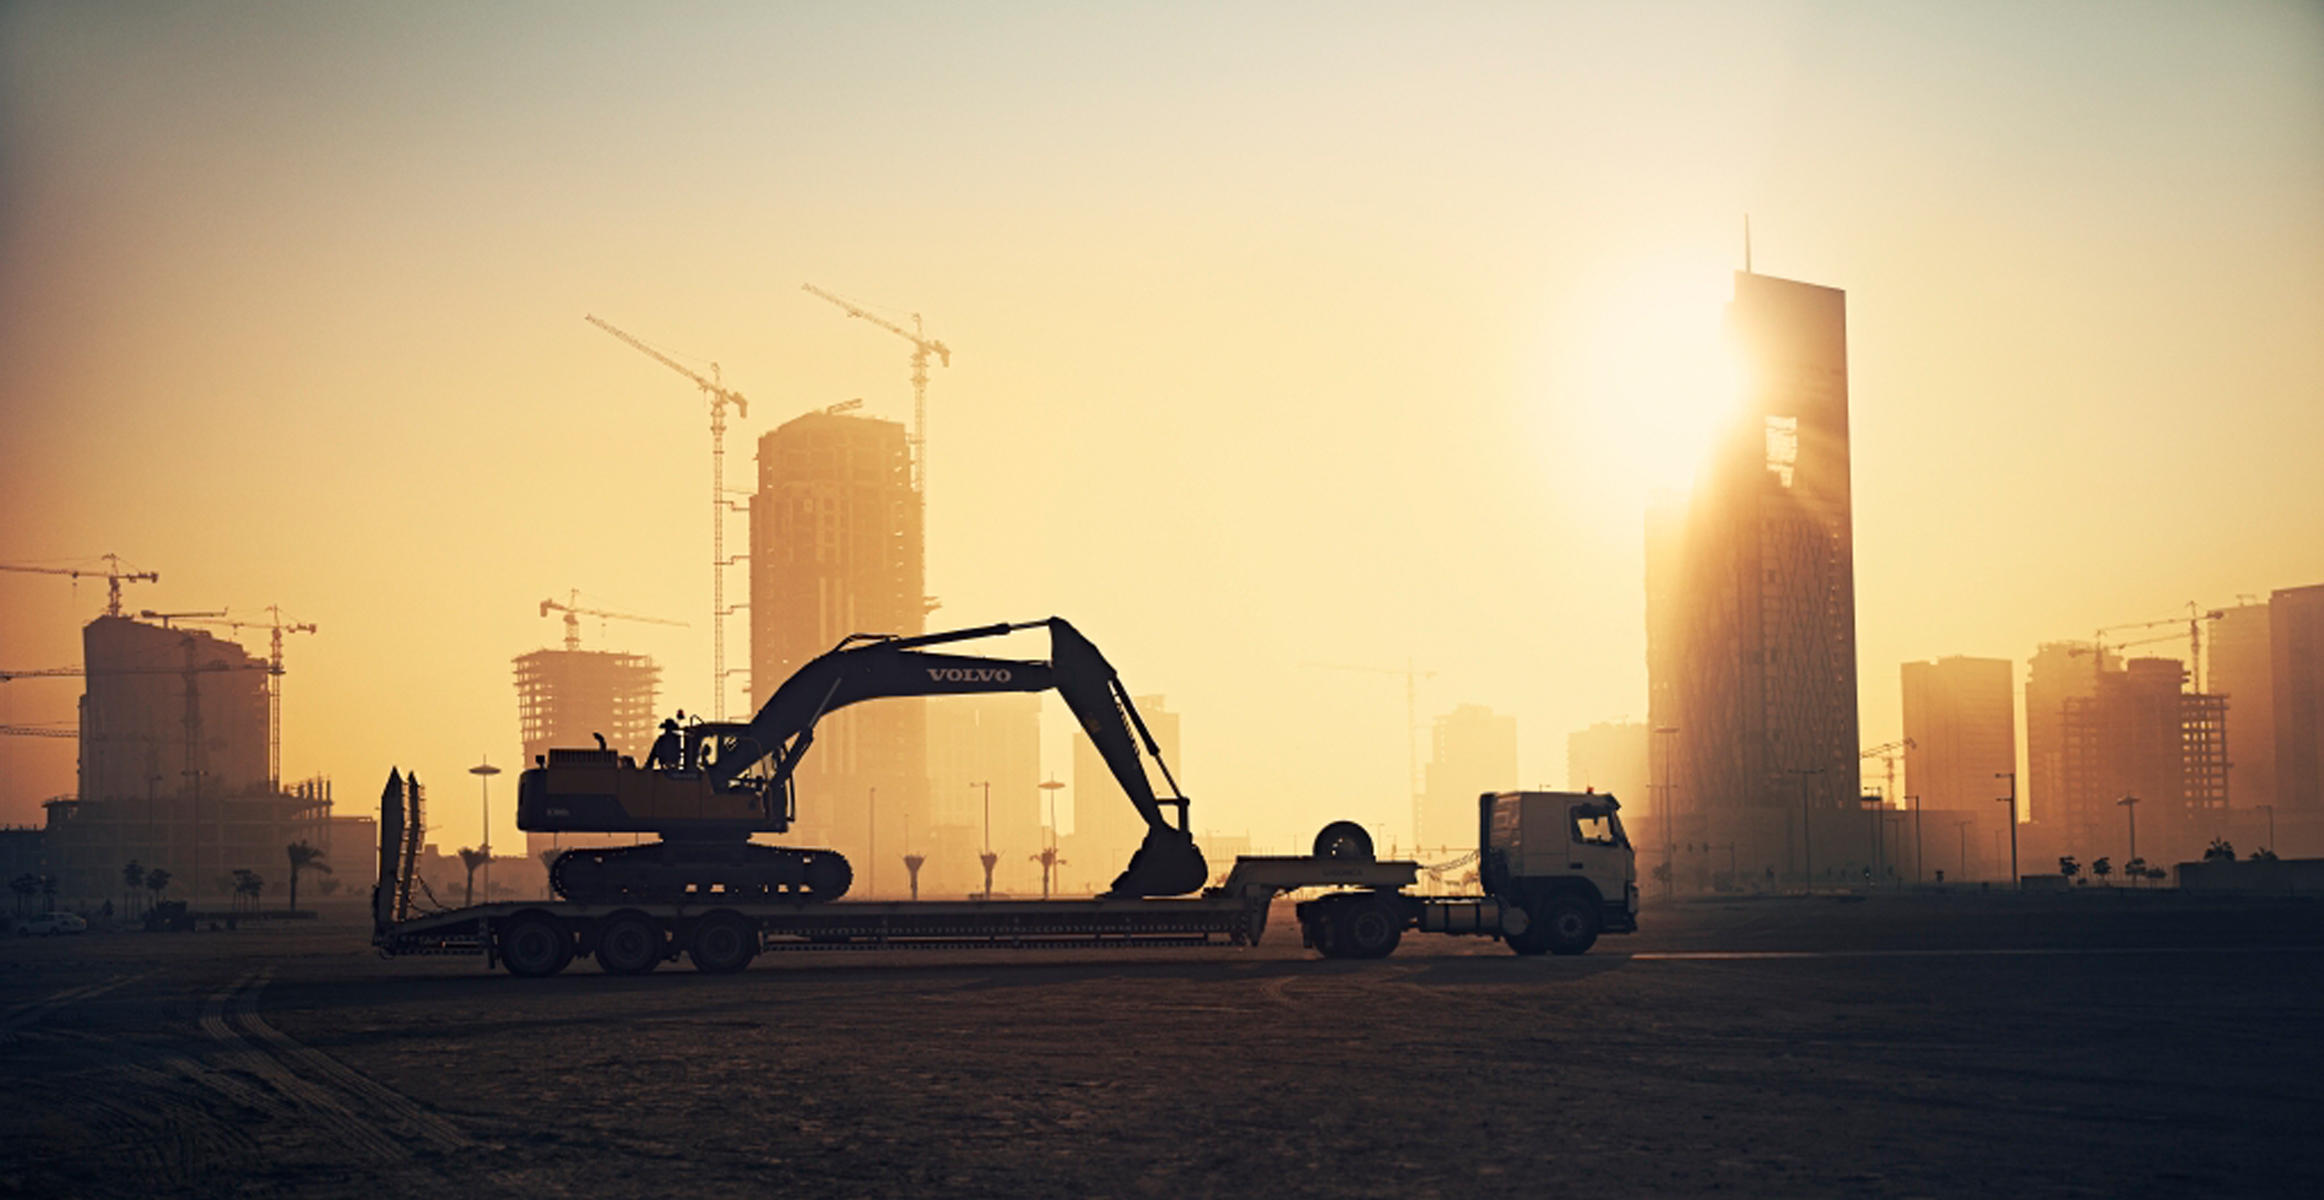 Volvo-machines-help-to-build-smart-city-in-the-desert-02-2324x1200